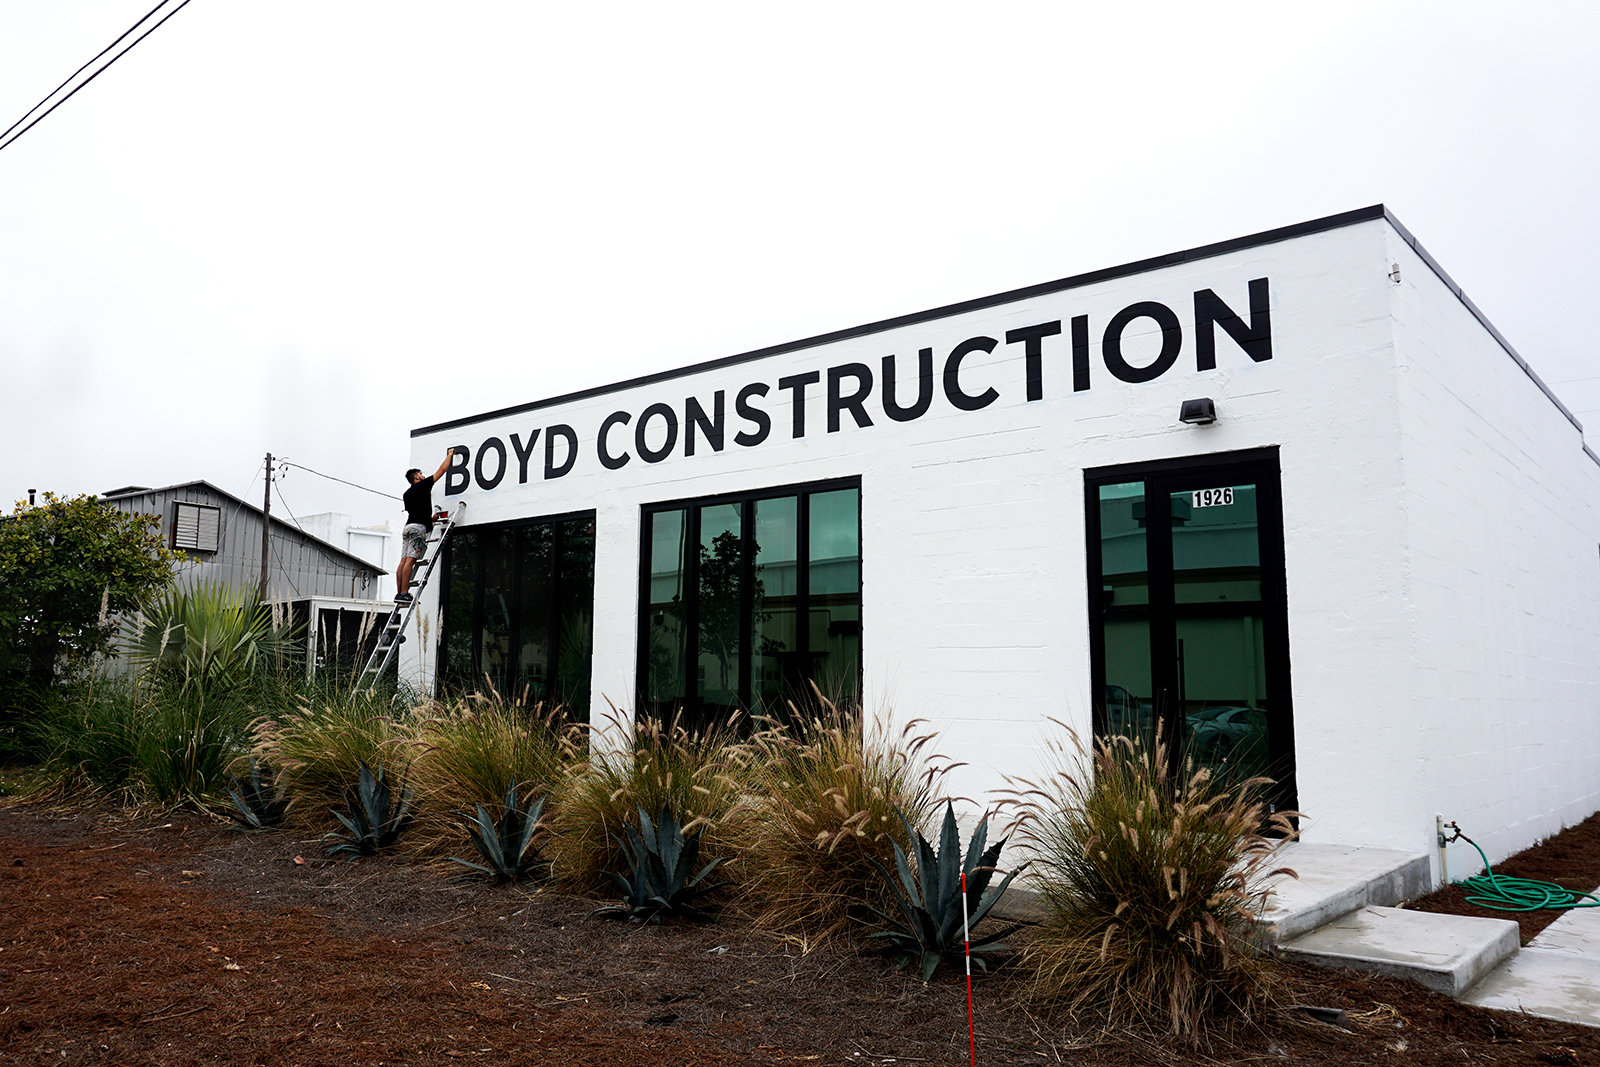 Boyd-Construction-Leo-Gomez-Studio-Hand-Painted-Sign-03.JPG